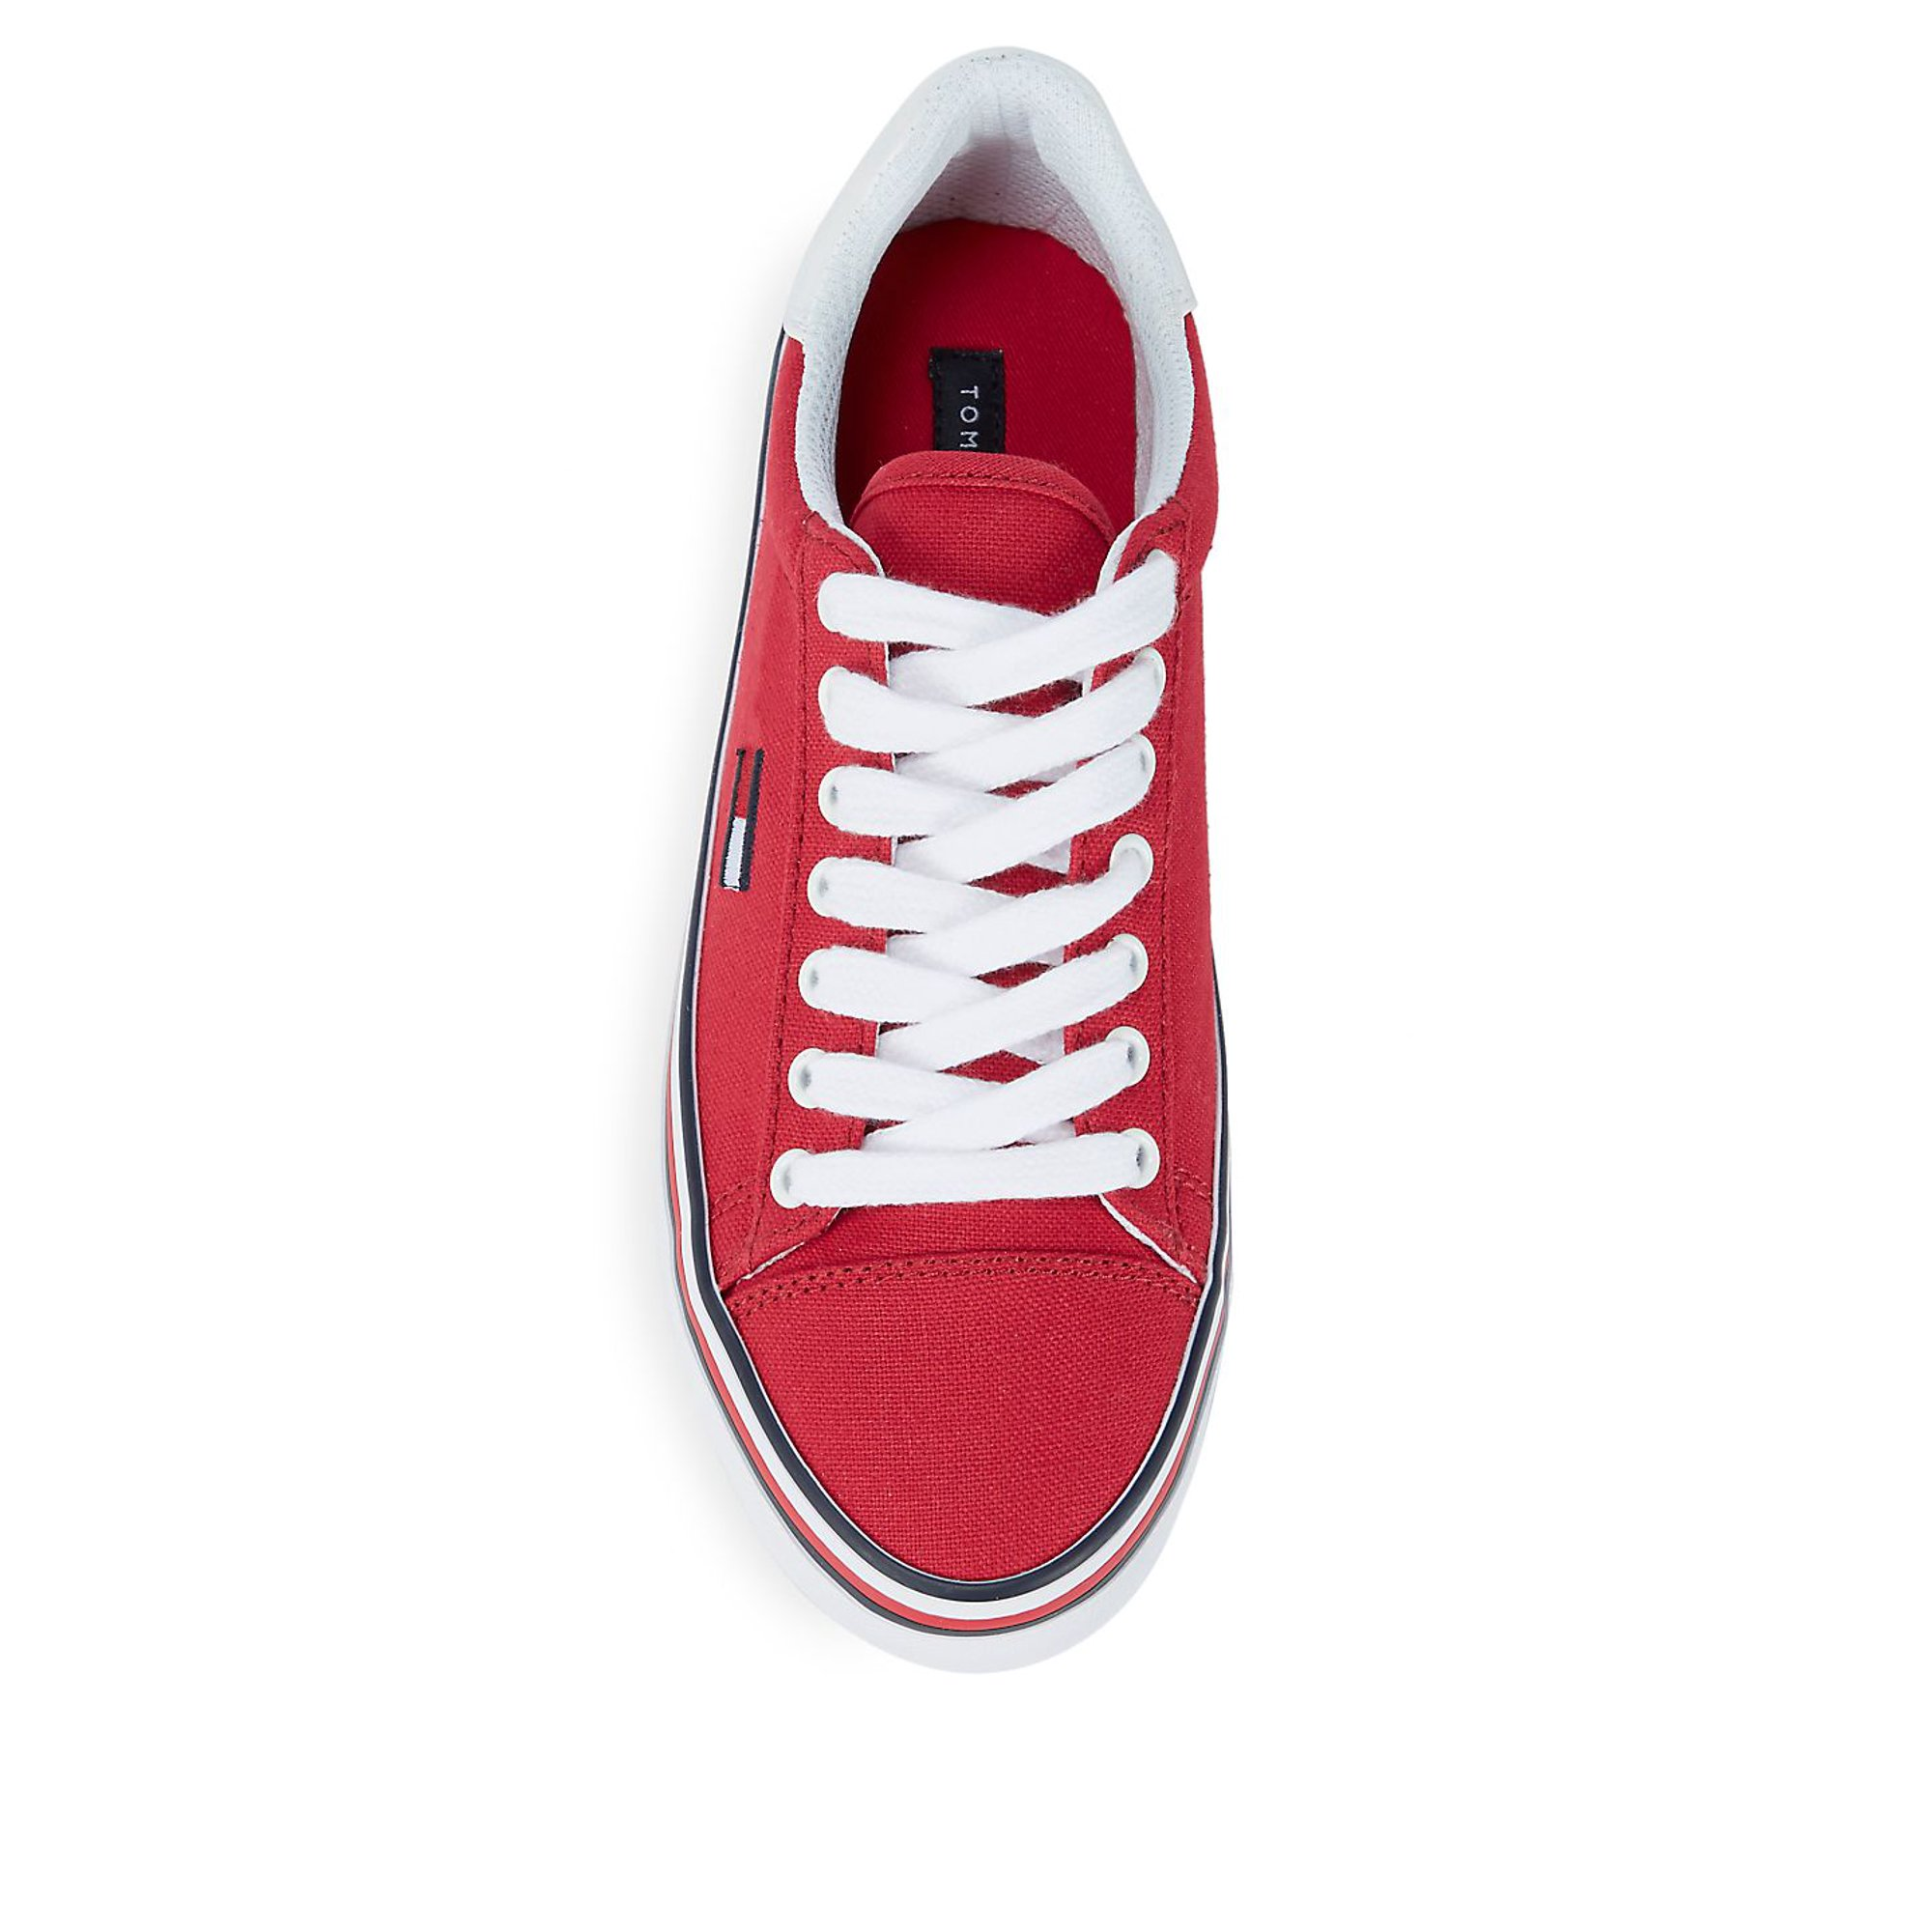 96e6bd83 Buy Fressian Canvas Sneakers | Cheapest Tommy Hilfiger deals and reviews